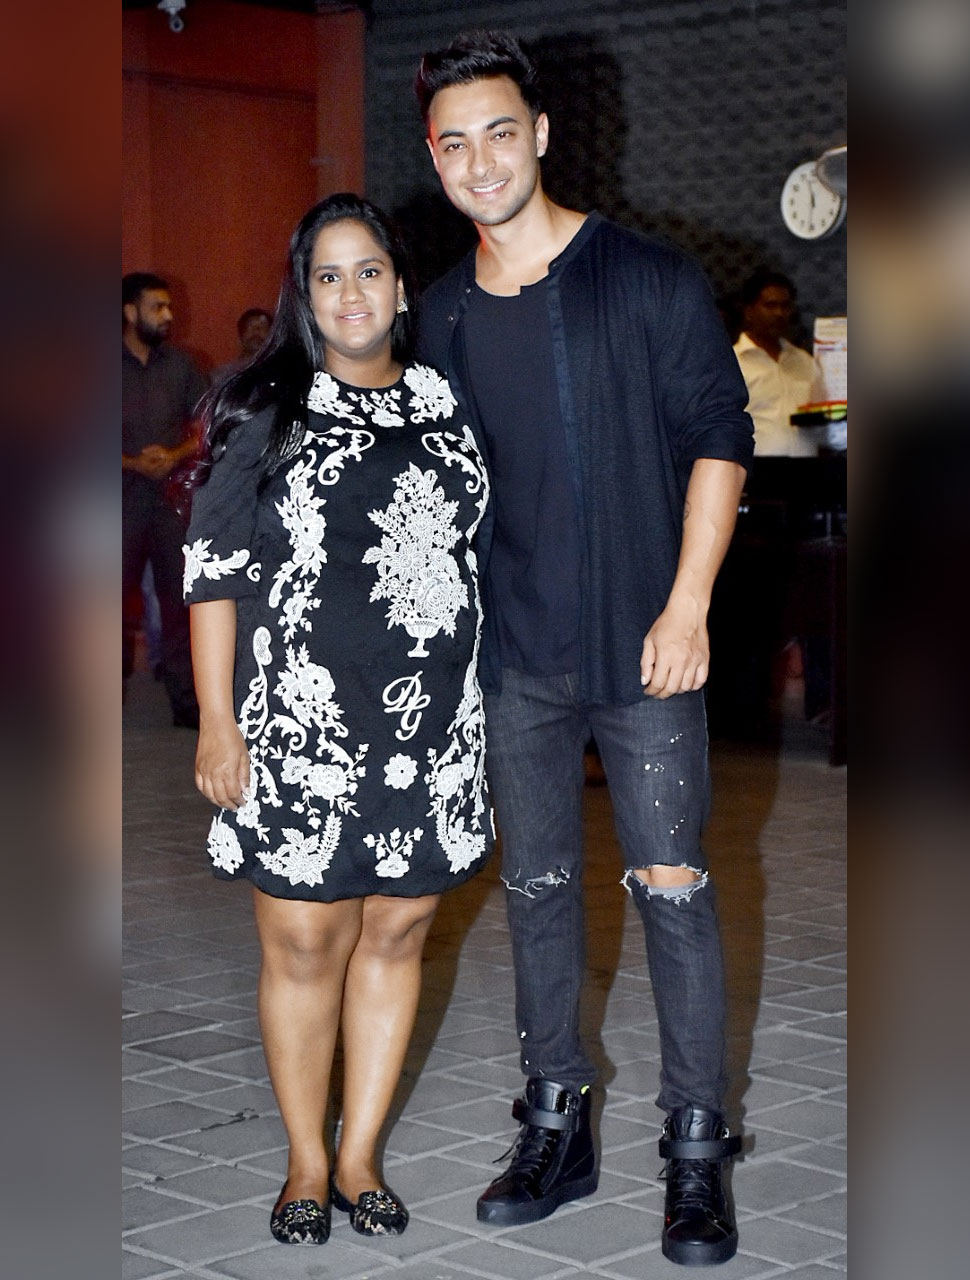 arpita khan and aayush sharma celebrating their wedding anniversary at their residence